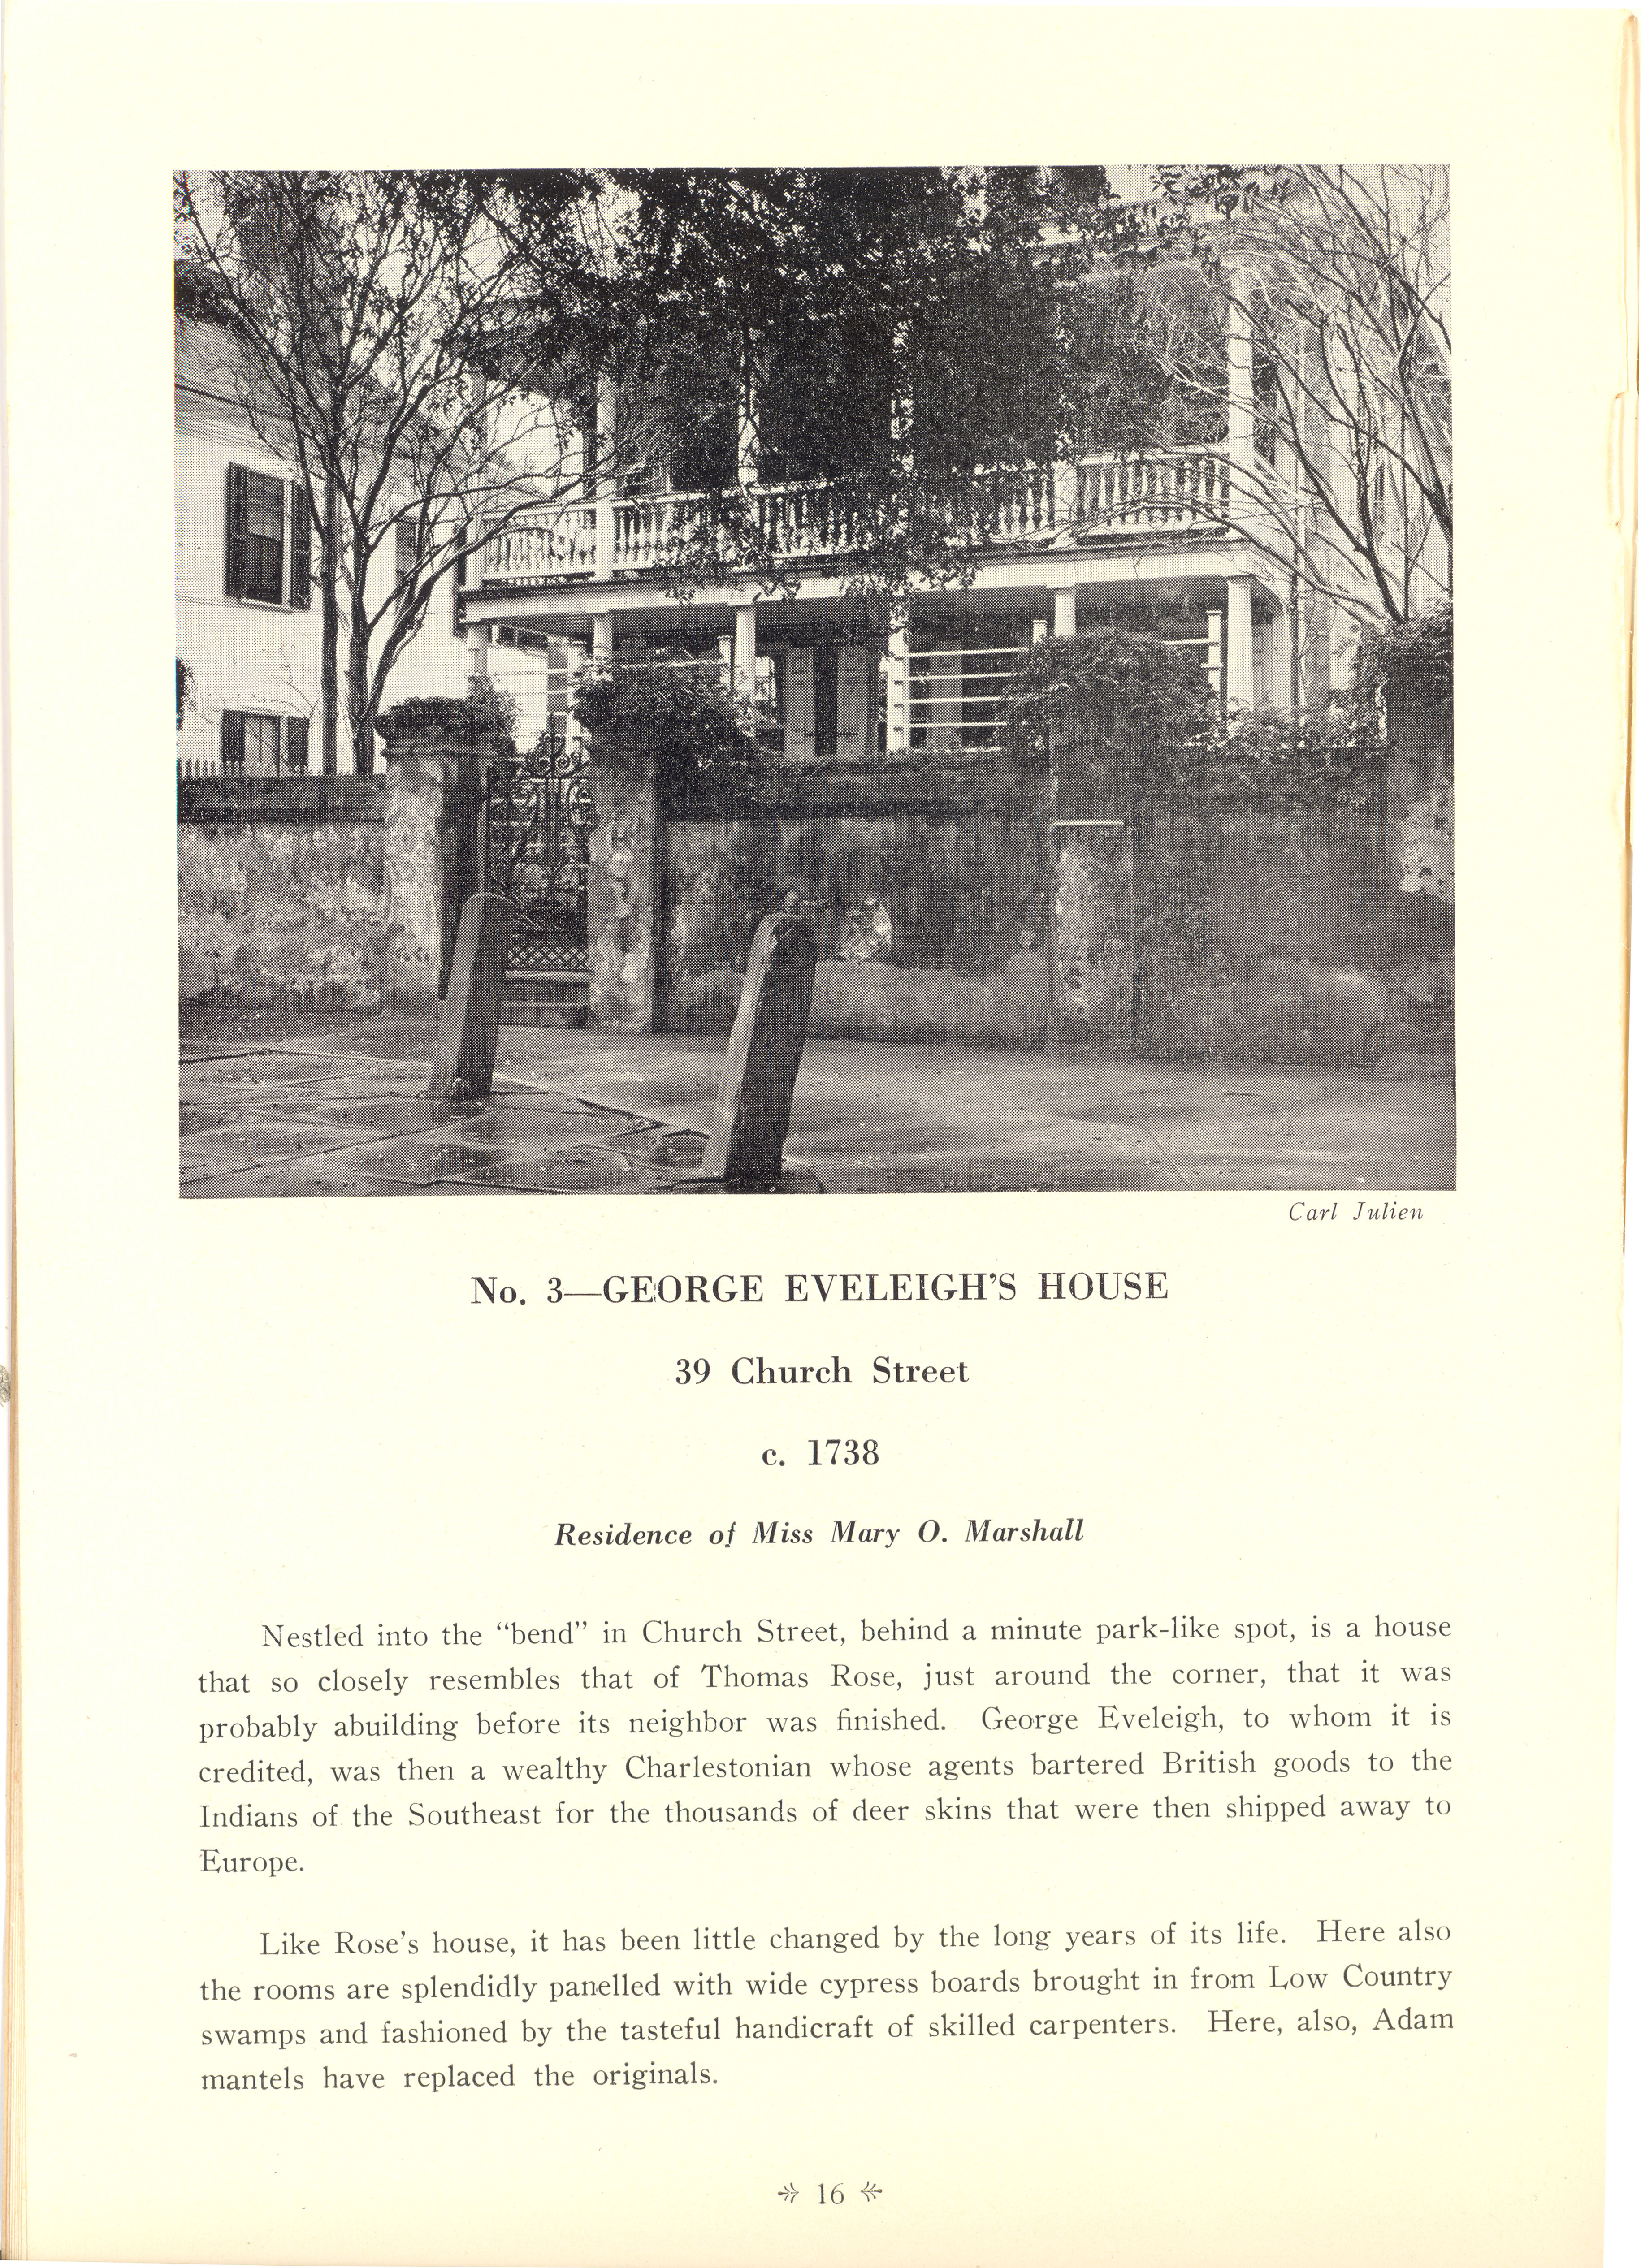 Page 16:  No. 3 - George Eveleigh's House, 39 Church Street, c. 1738